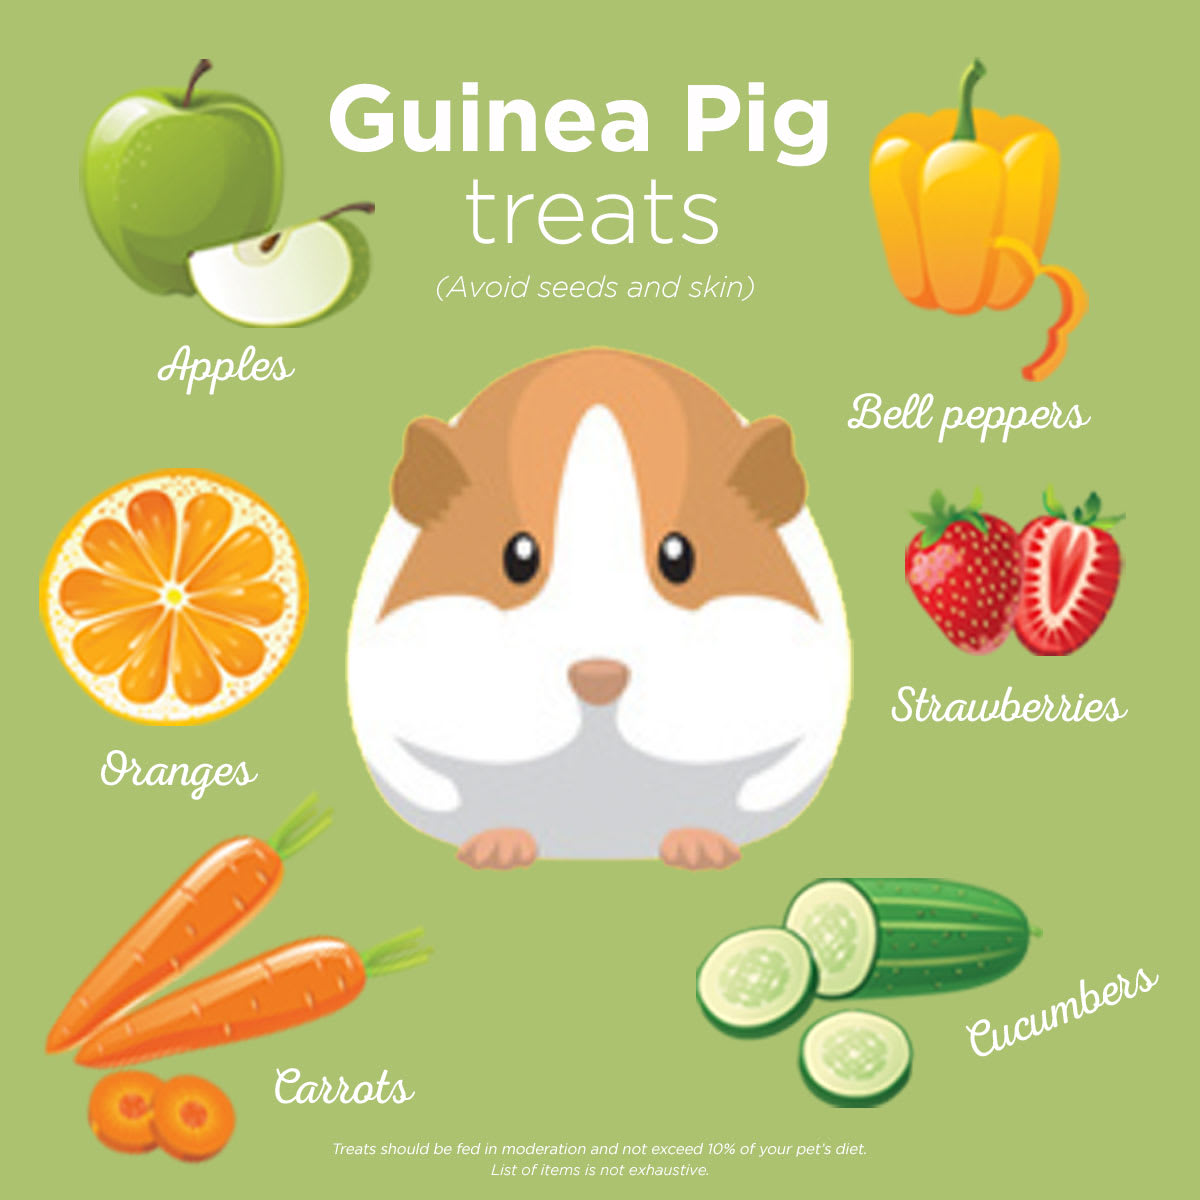 fruits and vegetables guinea pigs can eat